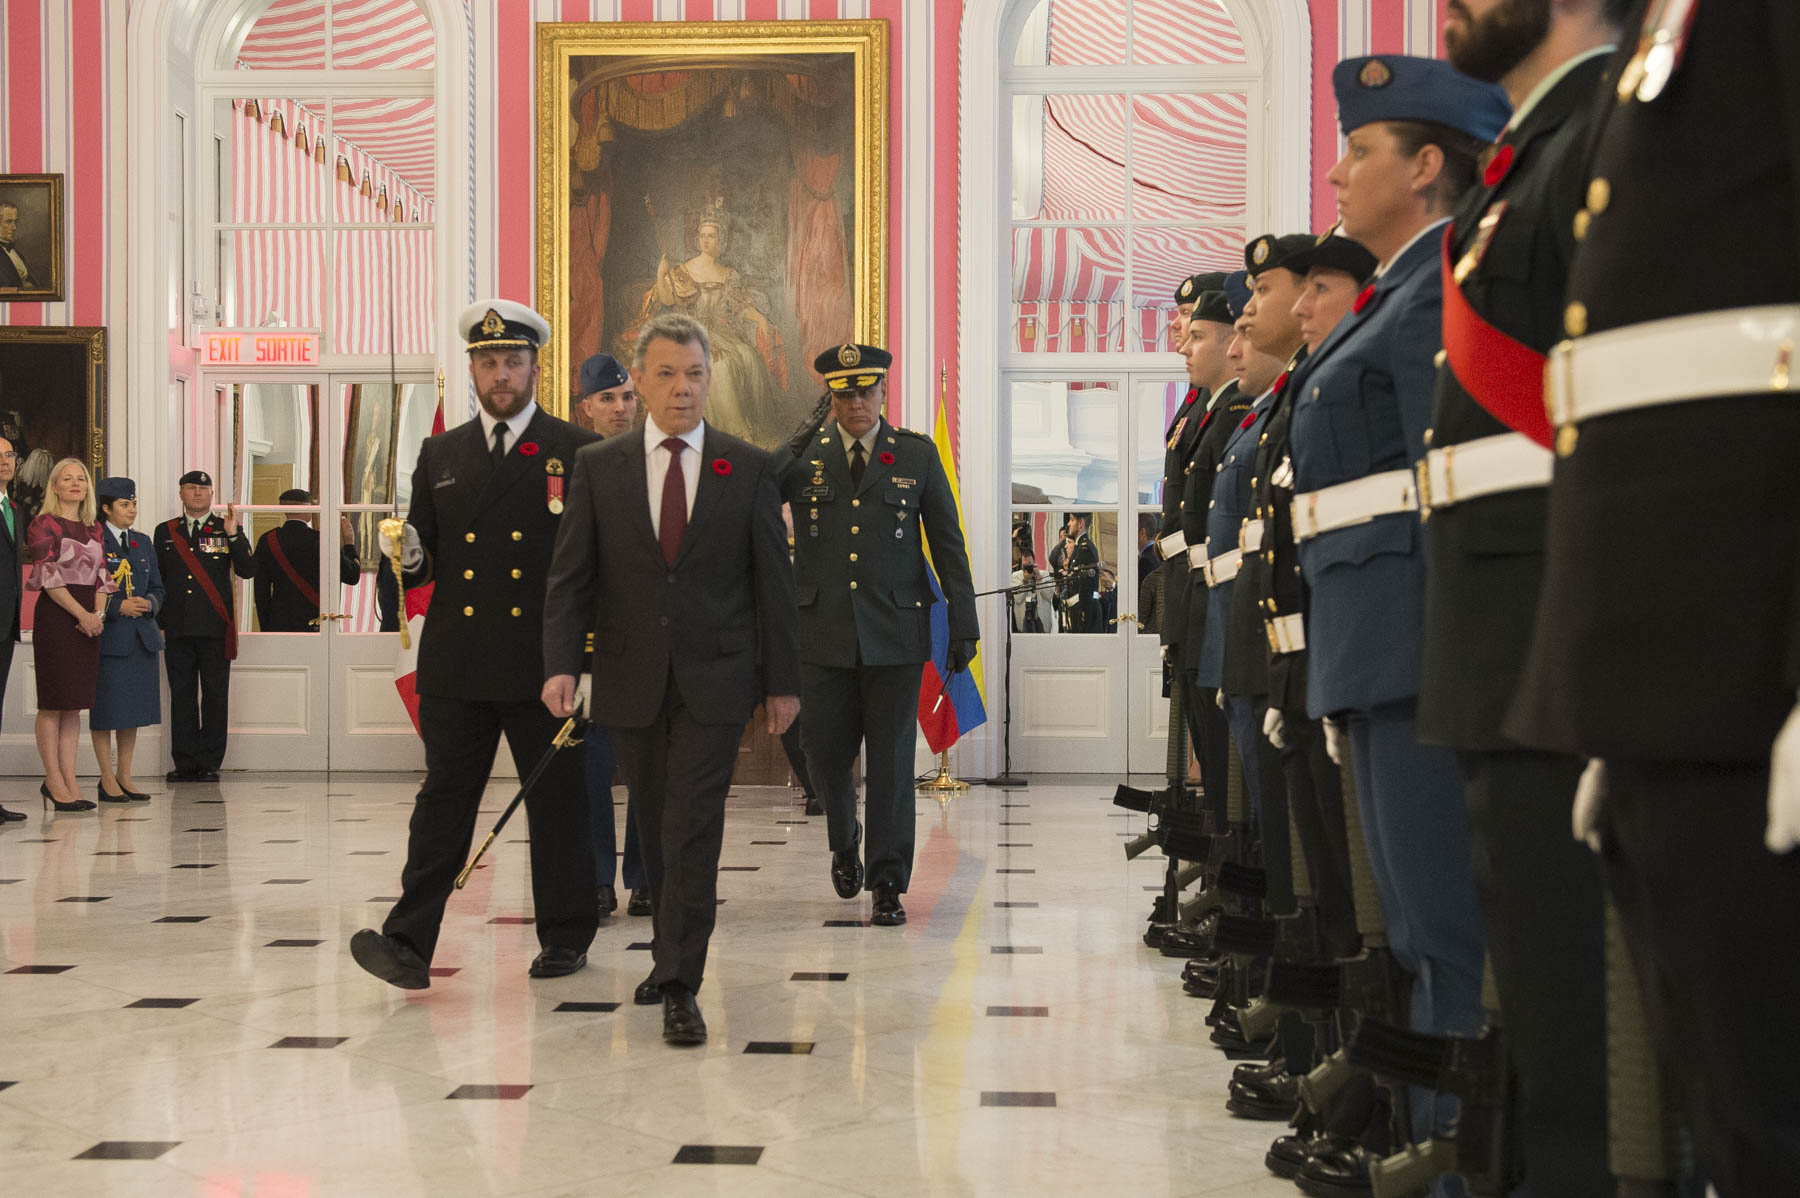 President Santos inspected a guard of honour during the ceremony.